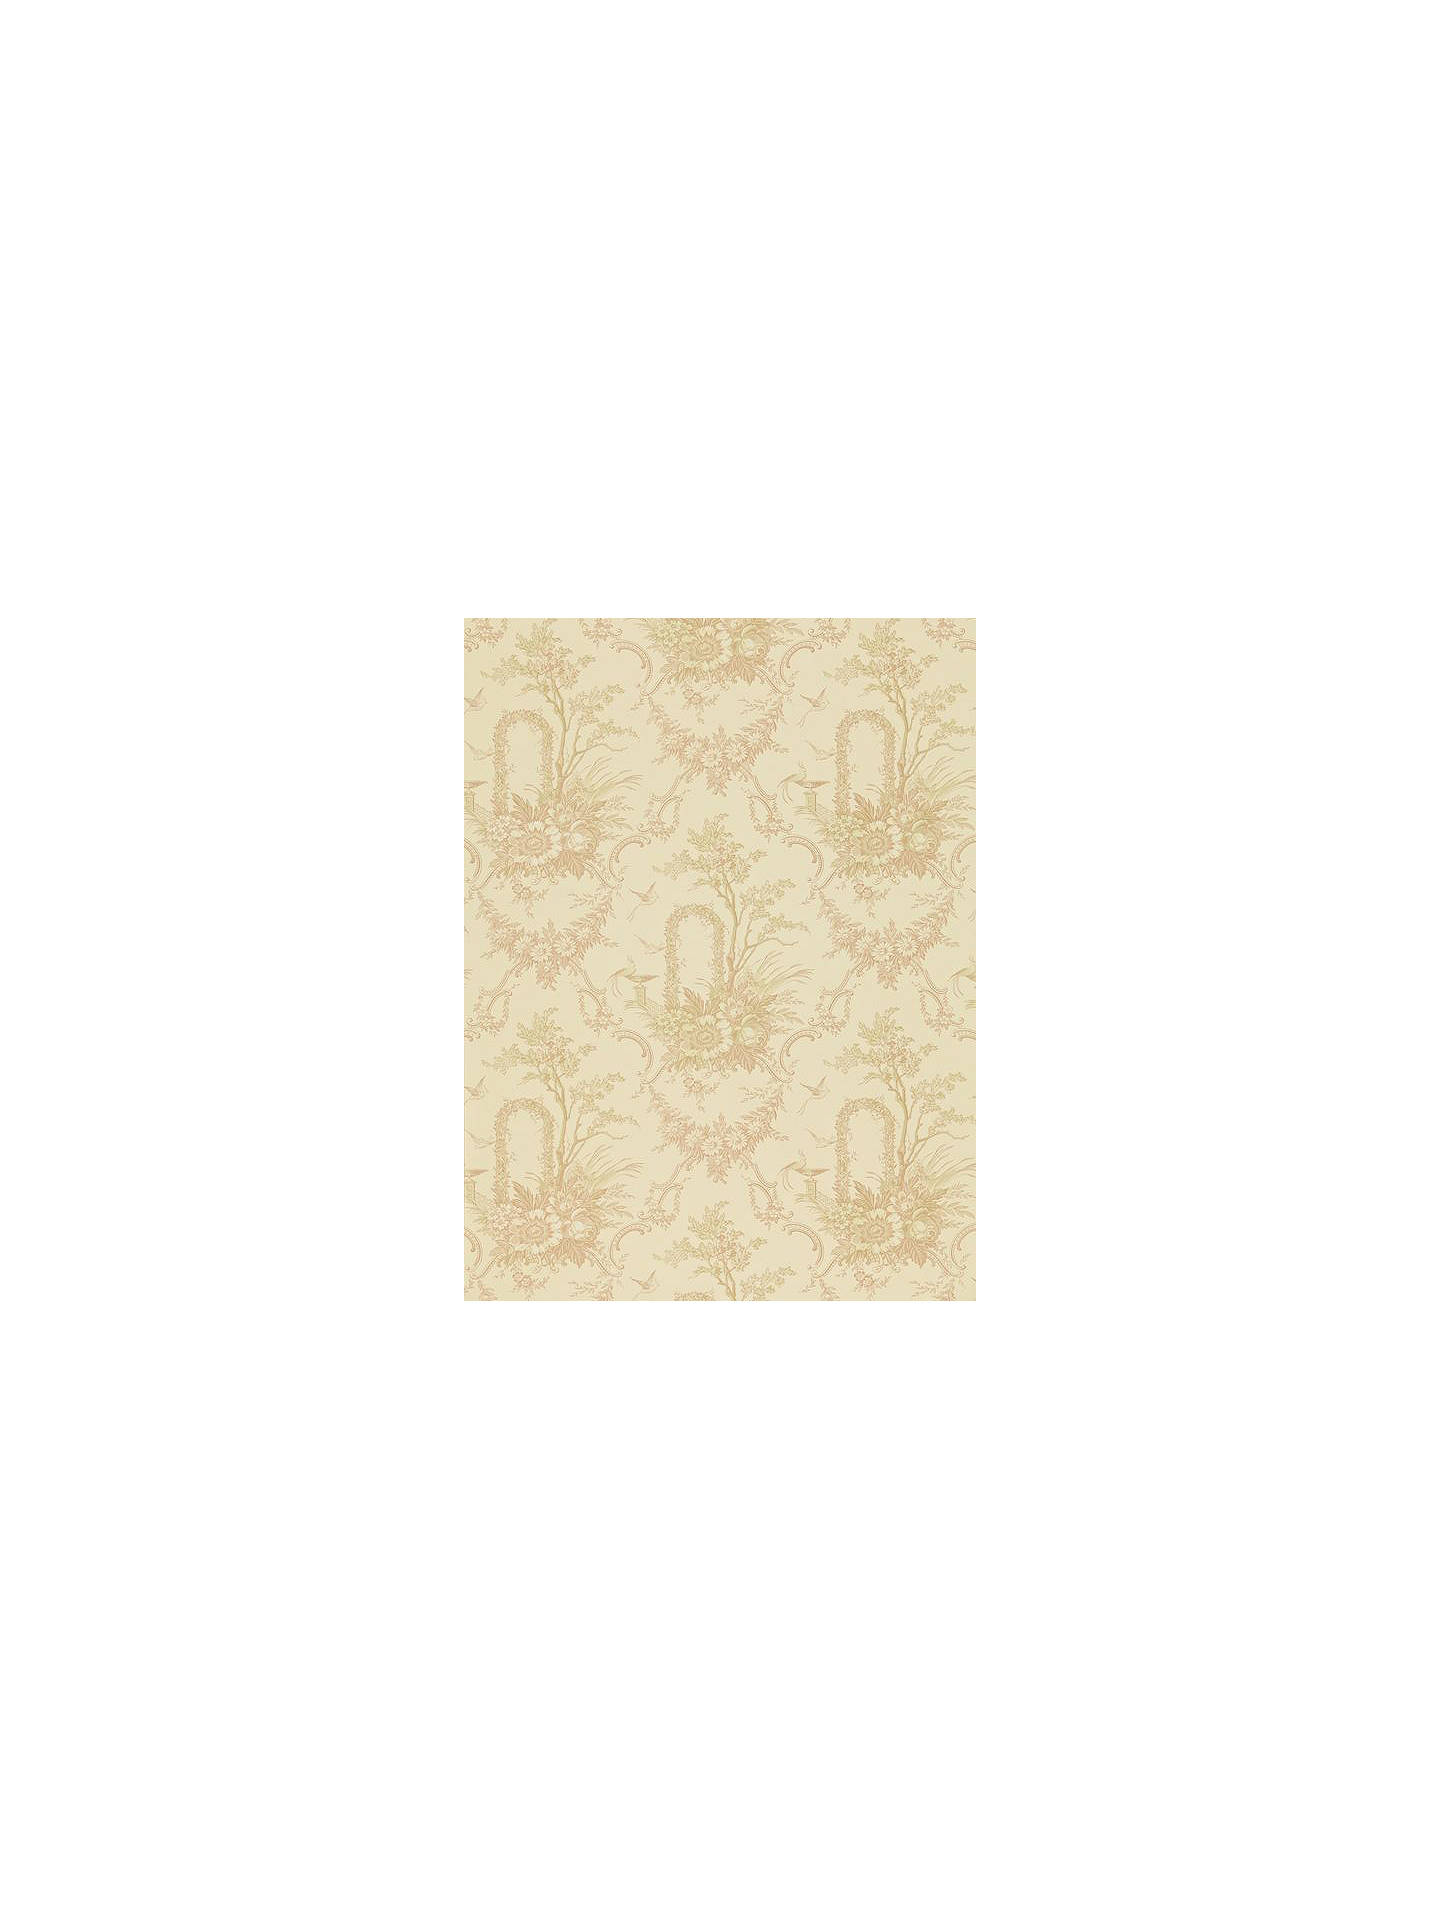 BuySanderson Archway Toile Wallpaper, Sand, DEGTAT102 Online at johnlewis.com